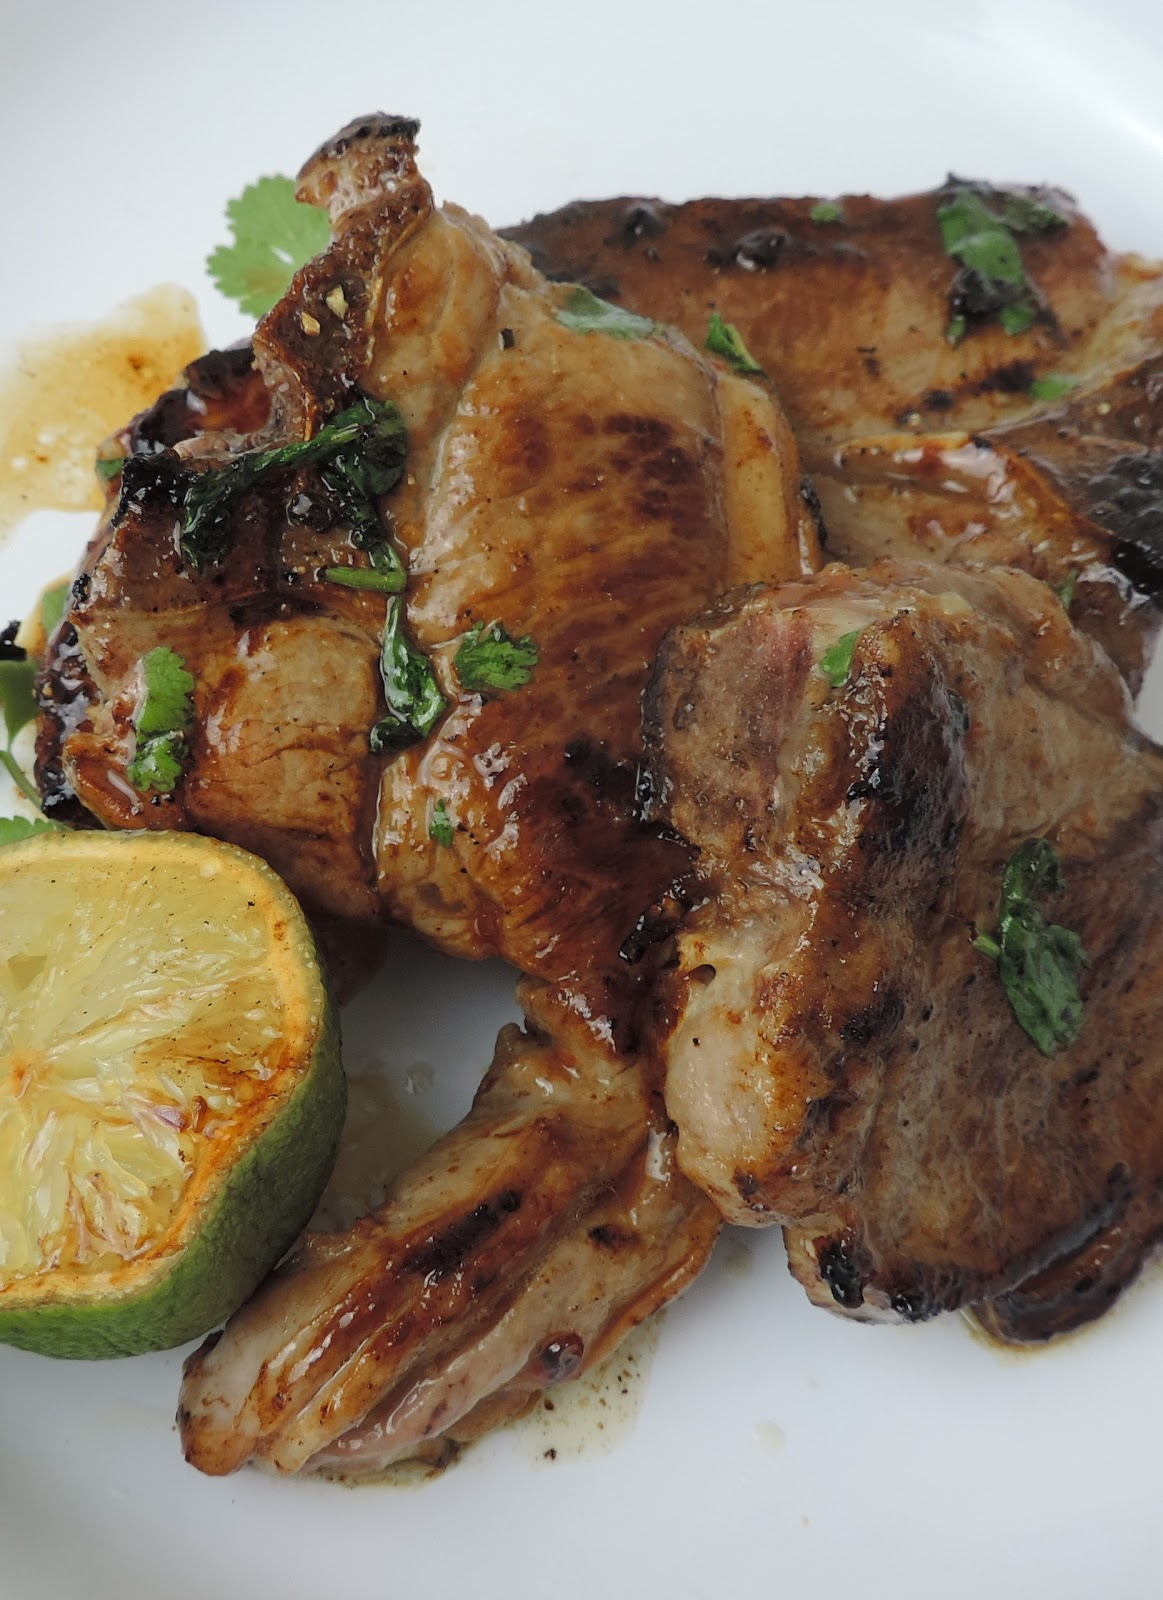 VanillaSaLt: Marinated Lamb Chops